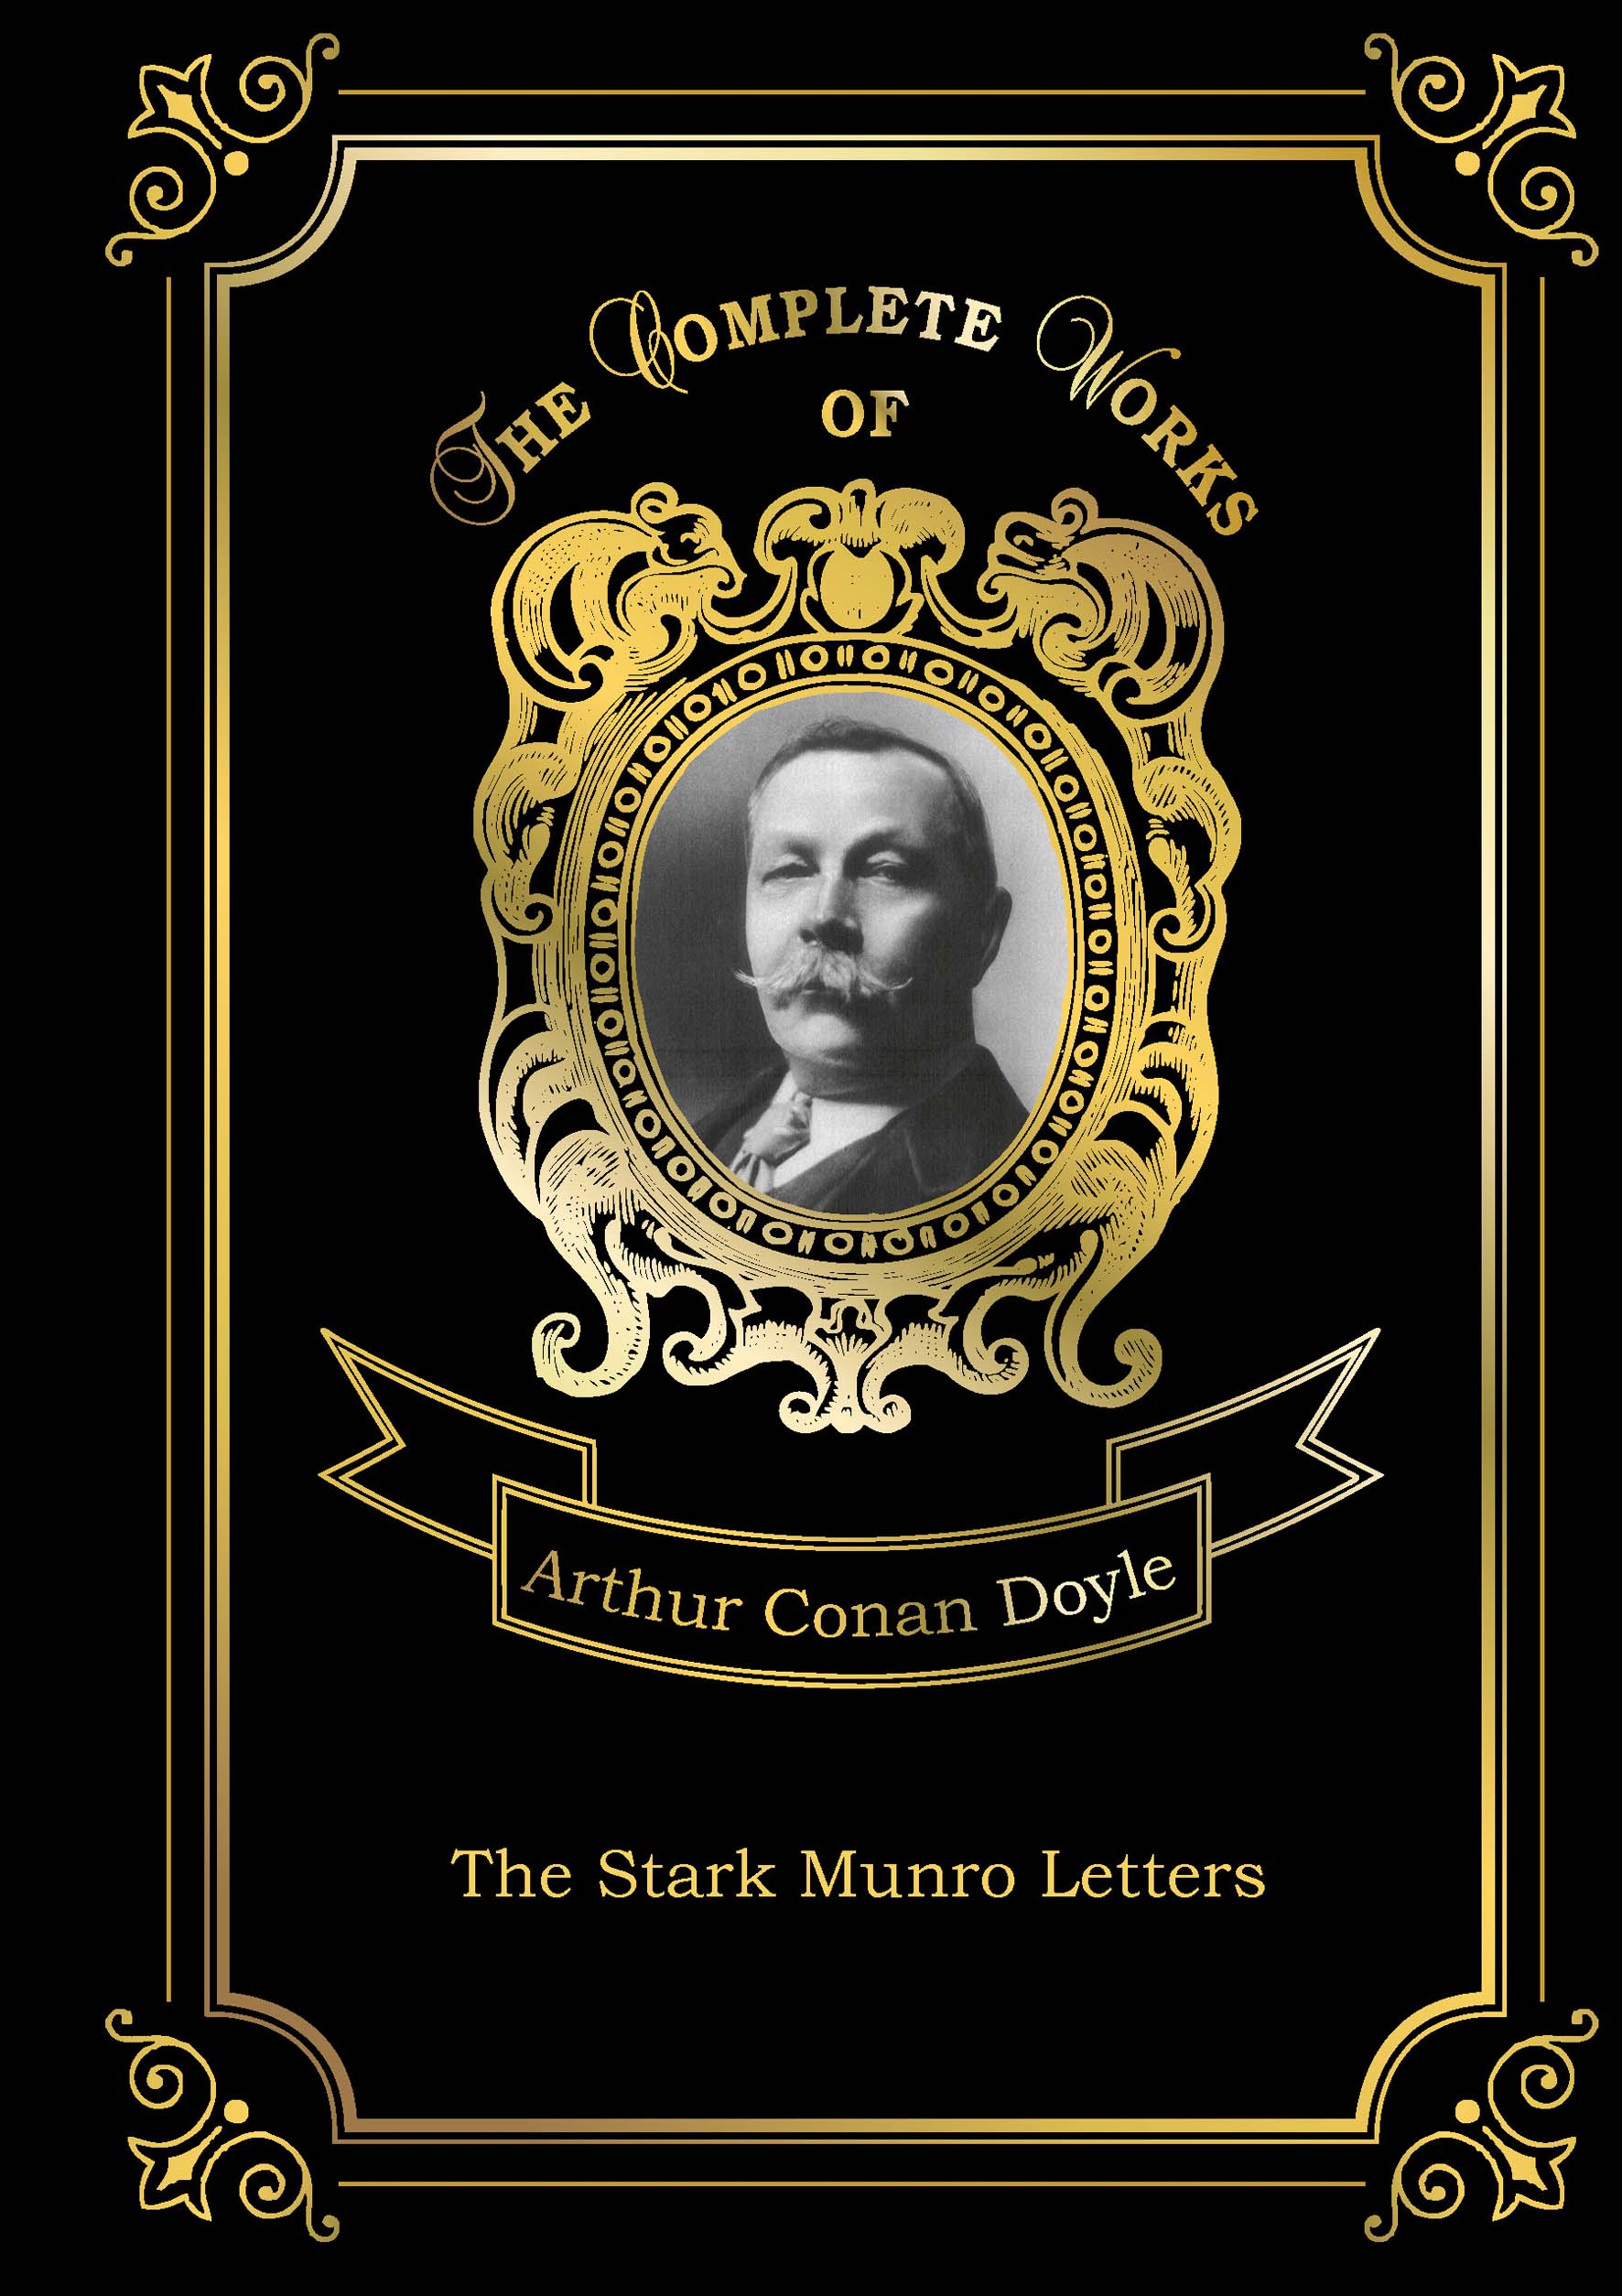 A.C. Doyle The Stark Munro Letters